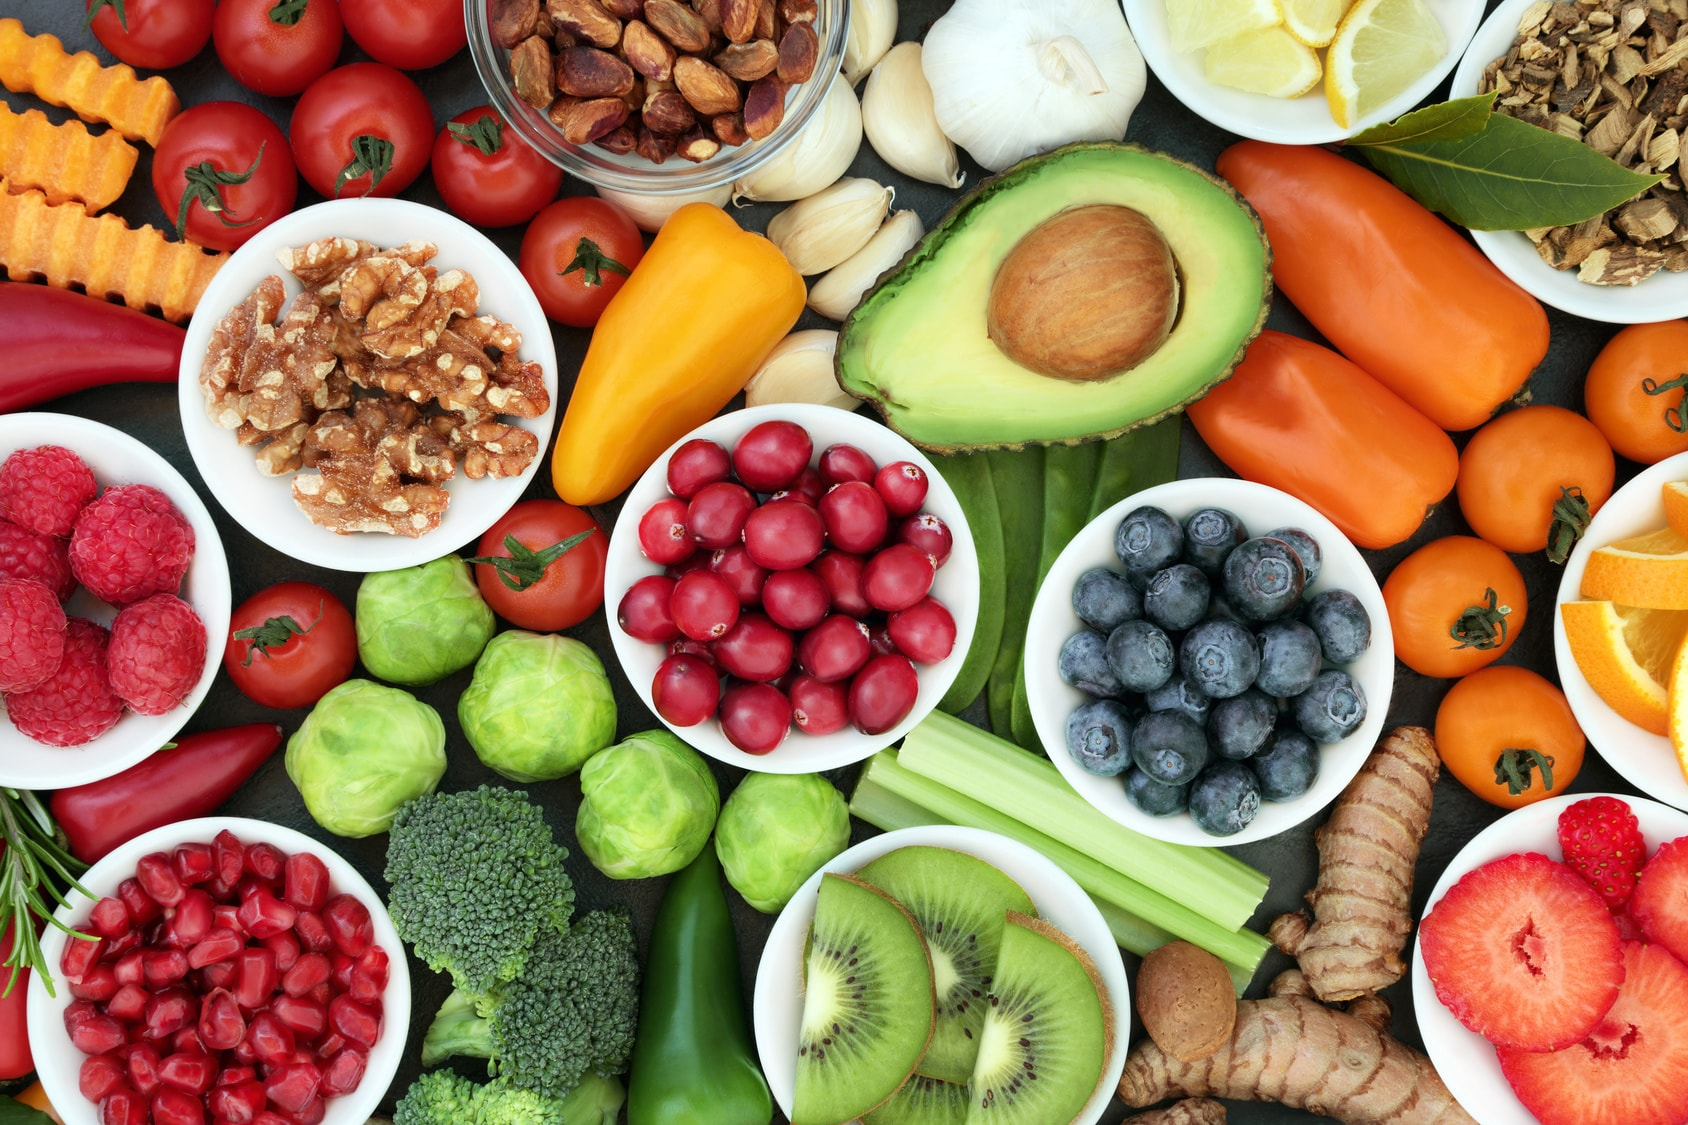 6 tips to make good nutrition and healthy eating easier